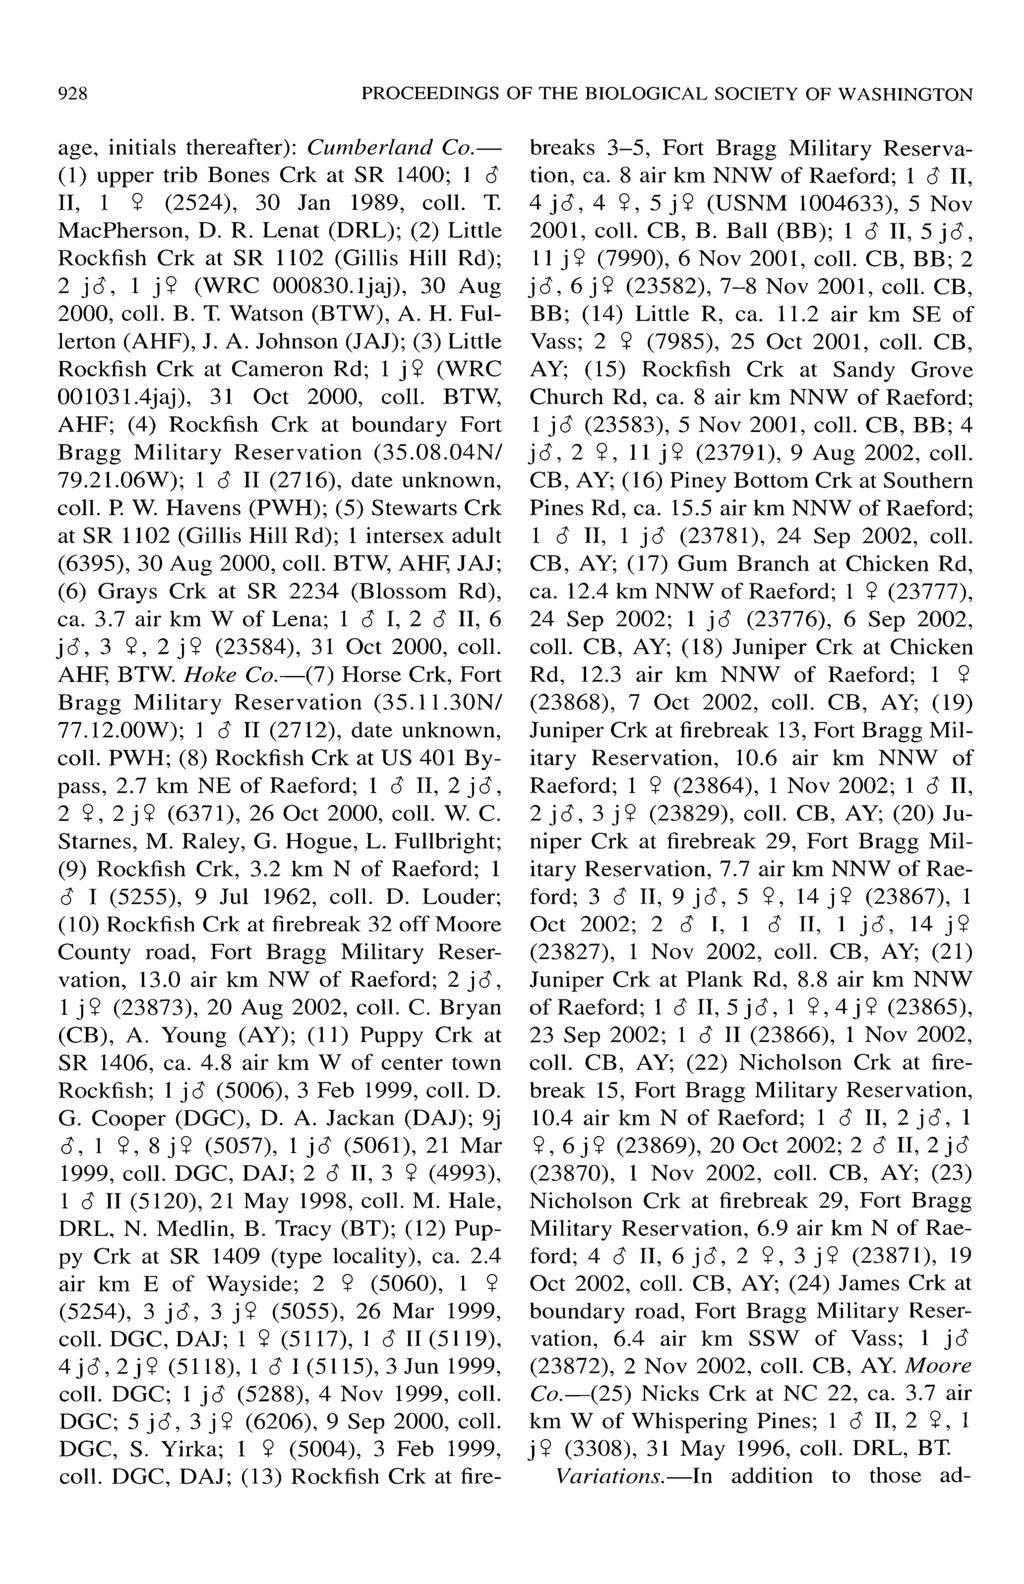 928 PROCEEDINGS OF THE BIOLOGICAL SOCIETY OF WASHINGTON age, initials thereafter): Cumberland Co. (1) upper trib Bones Crk at SR 1400; 1 8 II, 1 $ (2524), 30 Jan 1989, coll. T. MacPherson, D. R.